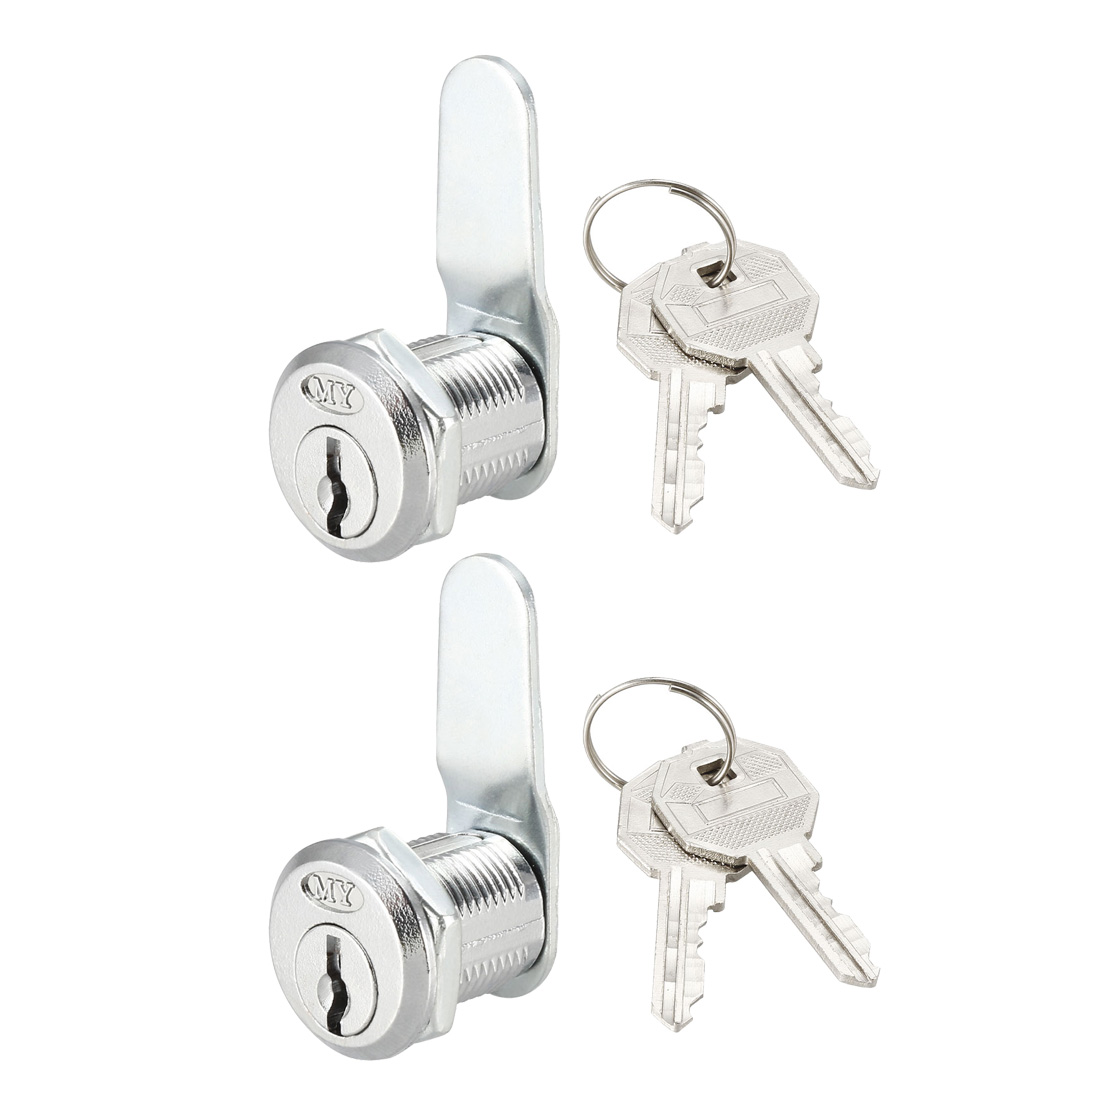 Cam Lock 20mm Cylinder Length 48mm x 2mm Cam Cabinet Locks Keyed Different 2Pcs